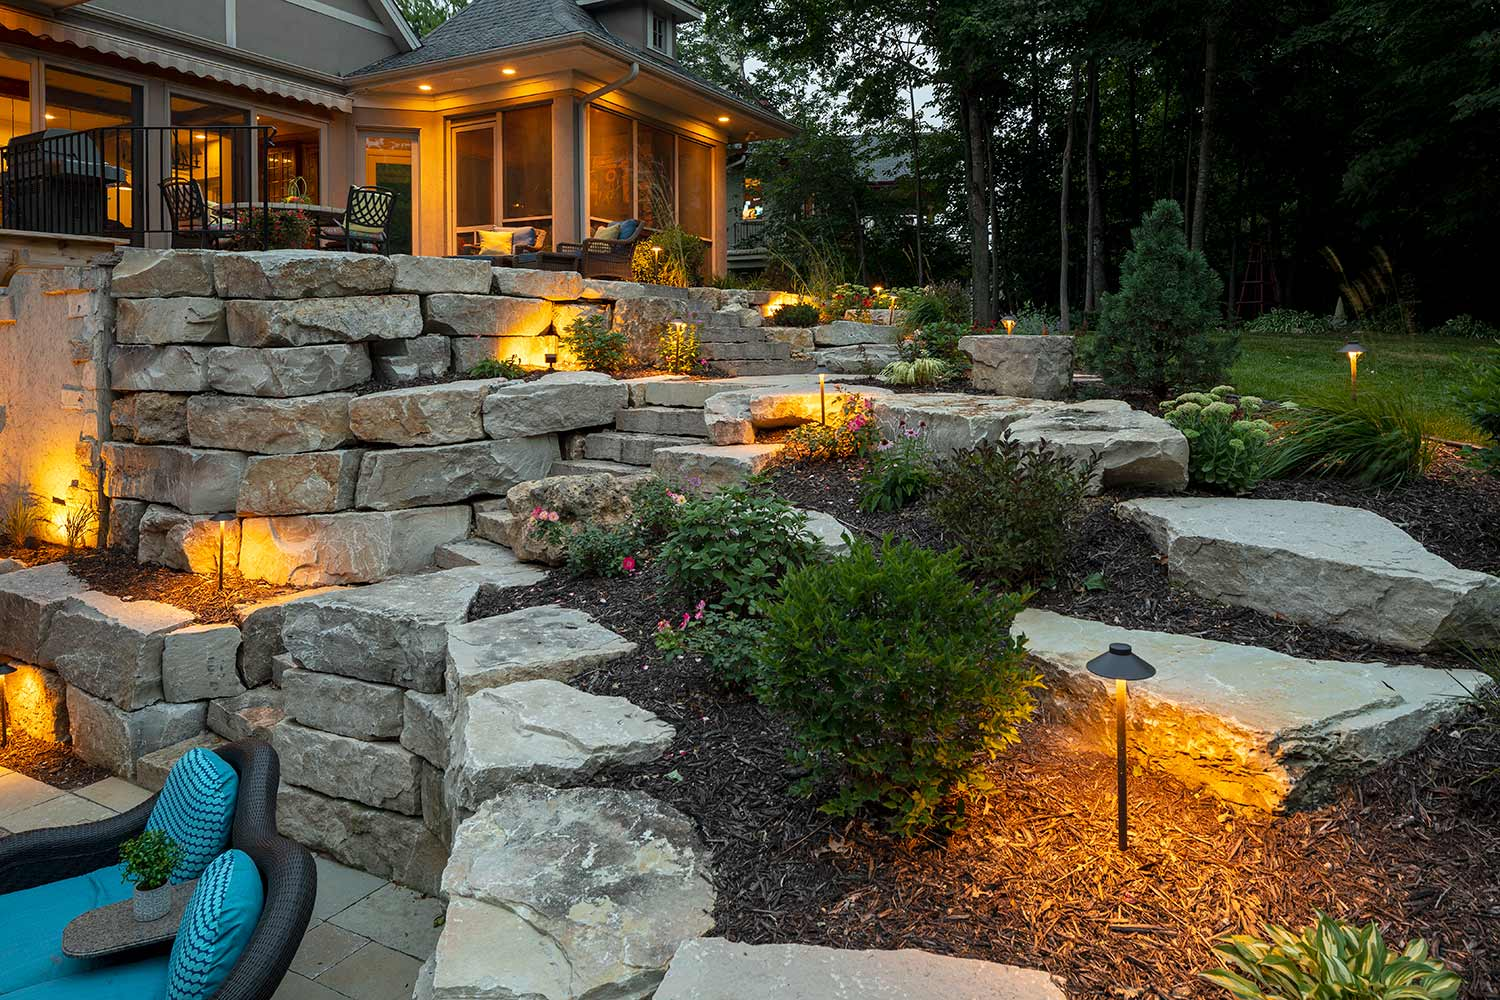 Landscape Lighting-New Braunfels TX Landscape Designs & Outdoor Living Areas-We offer Landscape Design, Outdoor Patios & Pergolas, Outdoor Living Spaces, Stonescapes, Residential & Commercial Landscaping, Irrigation Installation & Repairs, Drainage Systems, Landscape Lighting, Outdoor Living Spaces, Tree Service, Lawn Service, and more.